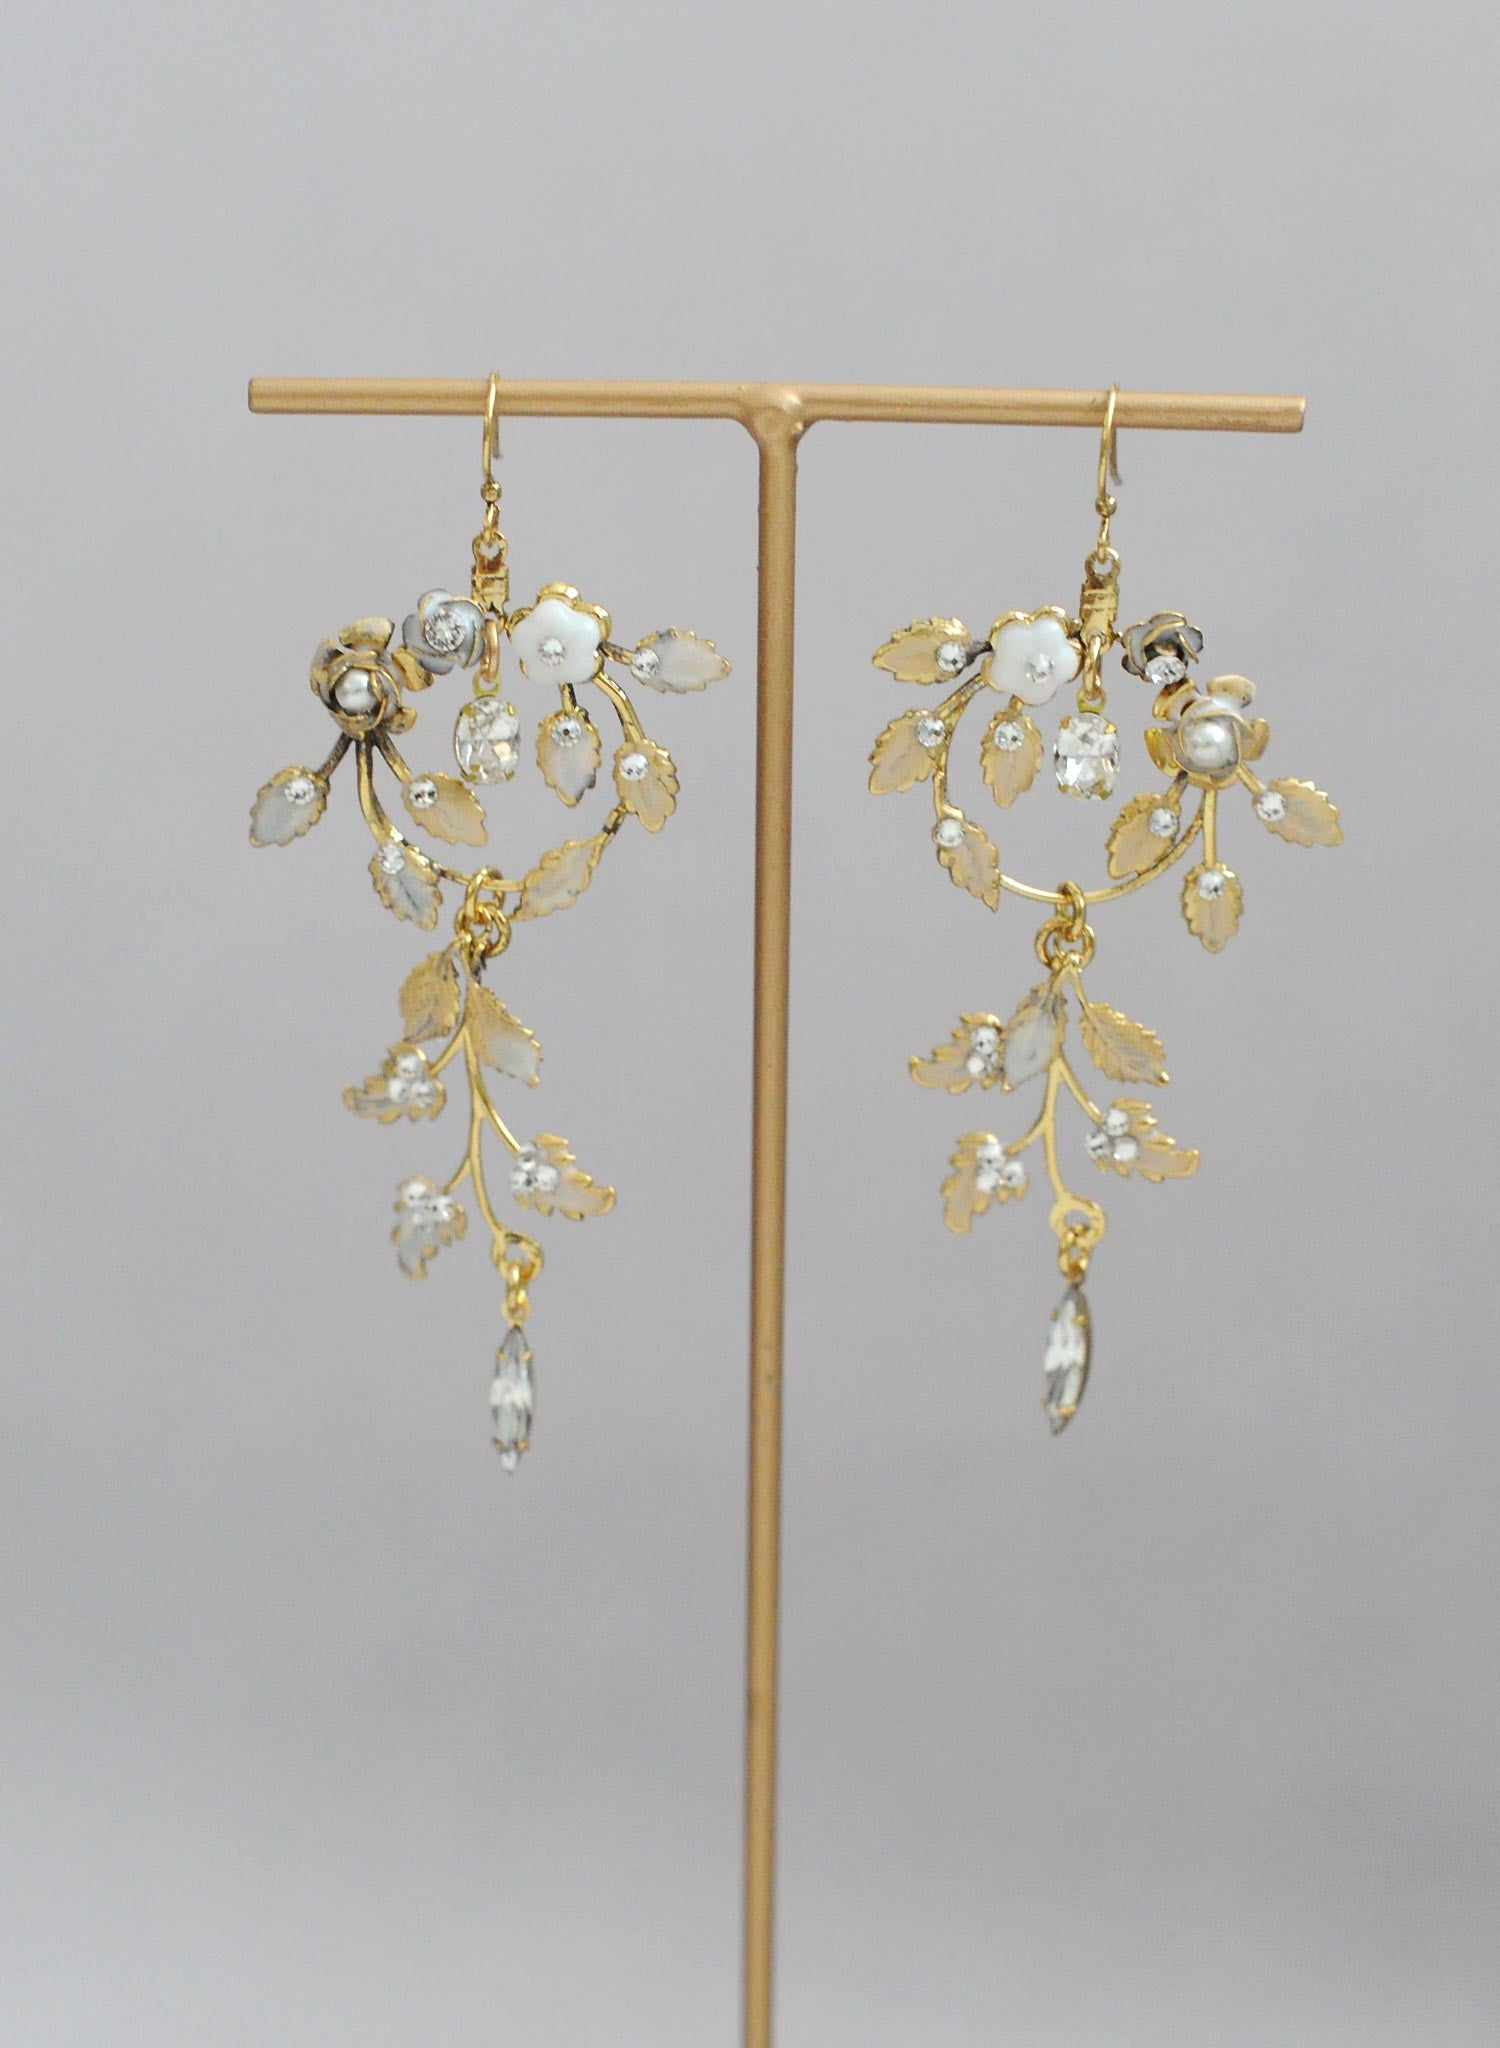 Enchanted frosted garden earrings - Style #628